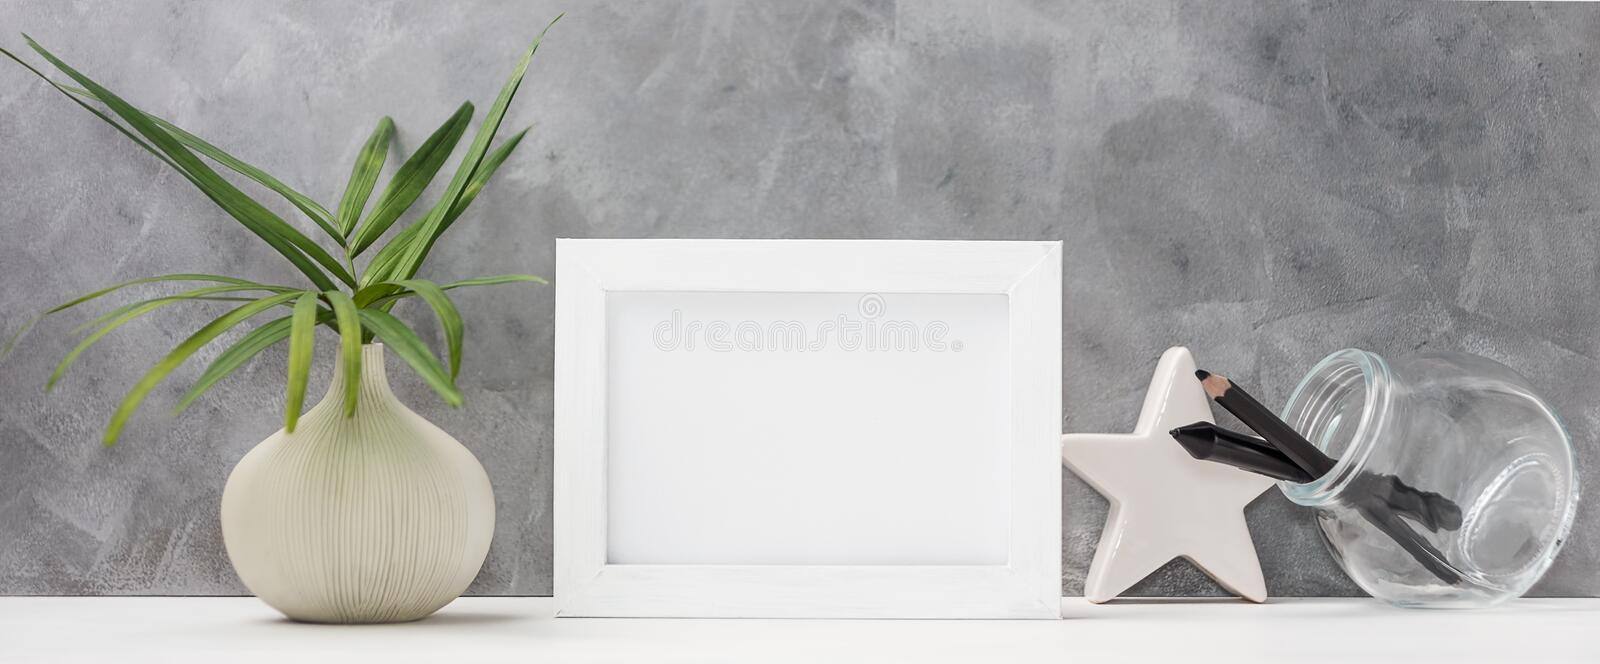 Photo frame close up mock up with palm leaves in vase, ceramic star, pen and pencil in mason jar on shelf. Scandinavian style royalty free stock photography